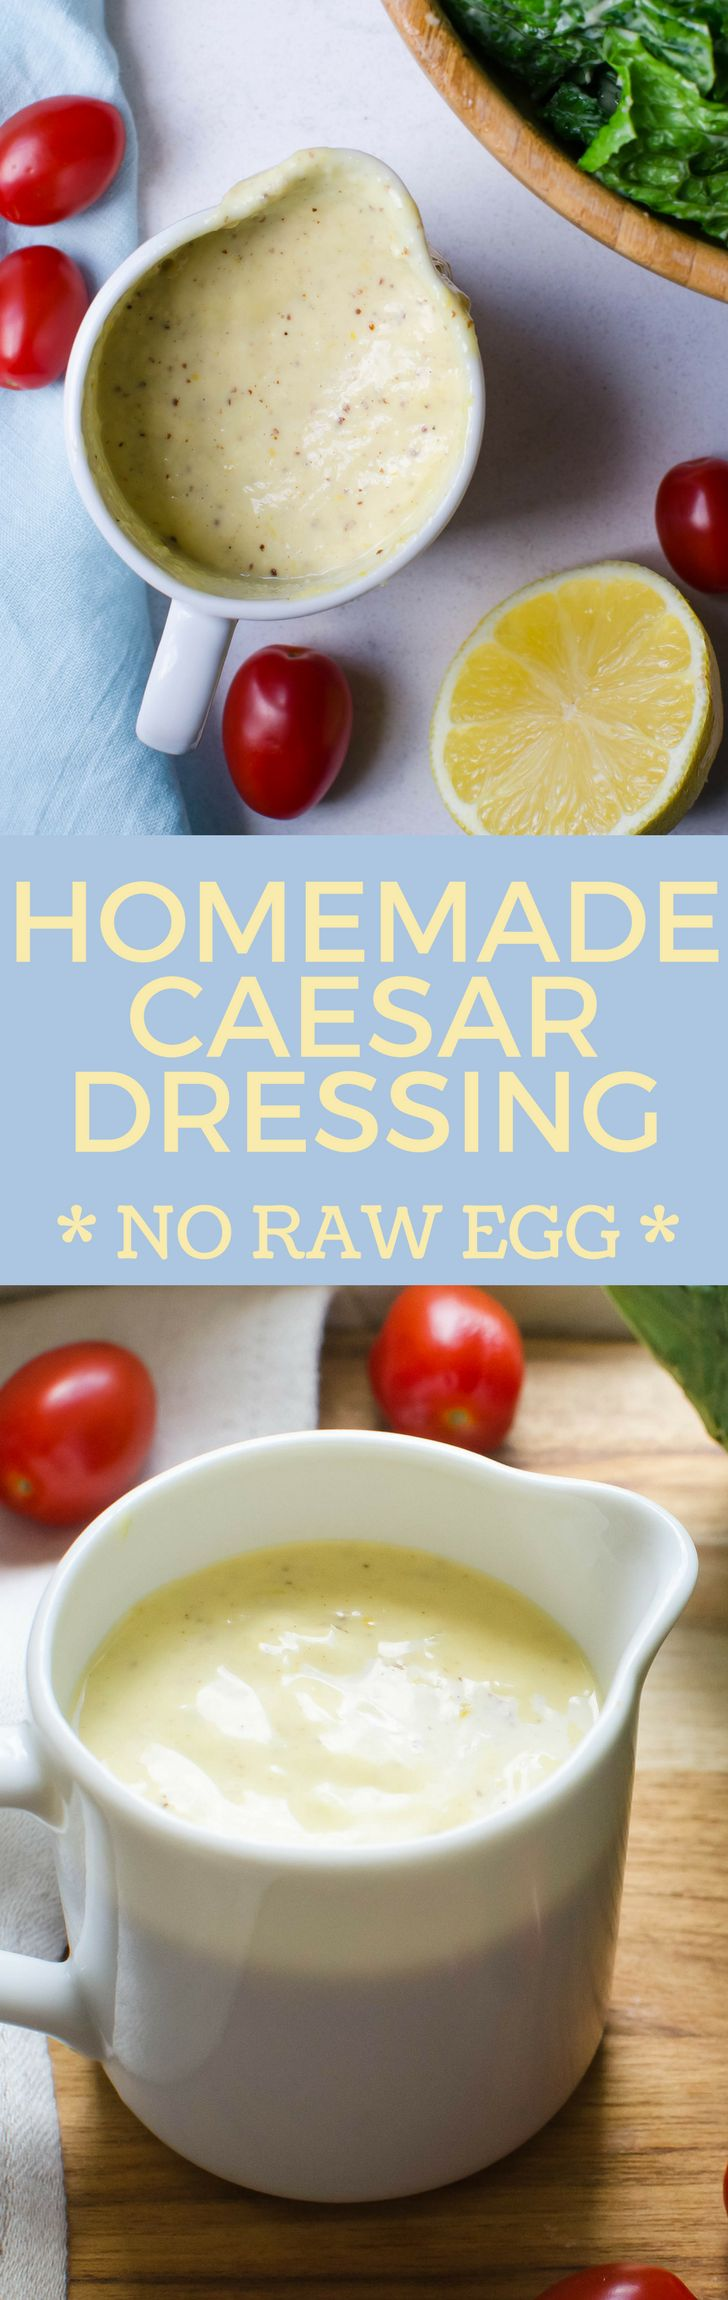 Never buy bottled dressing again! This easy caesar dressing is everything you want in homemade caesar dressing - garlicky with salty depth and no raw egg!